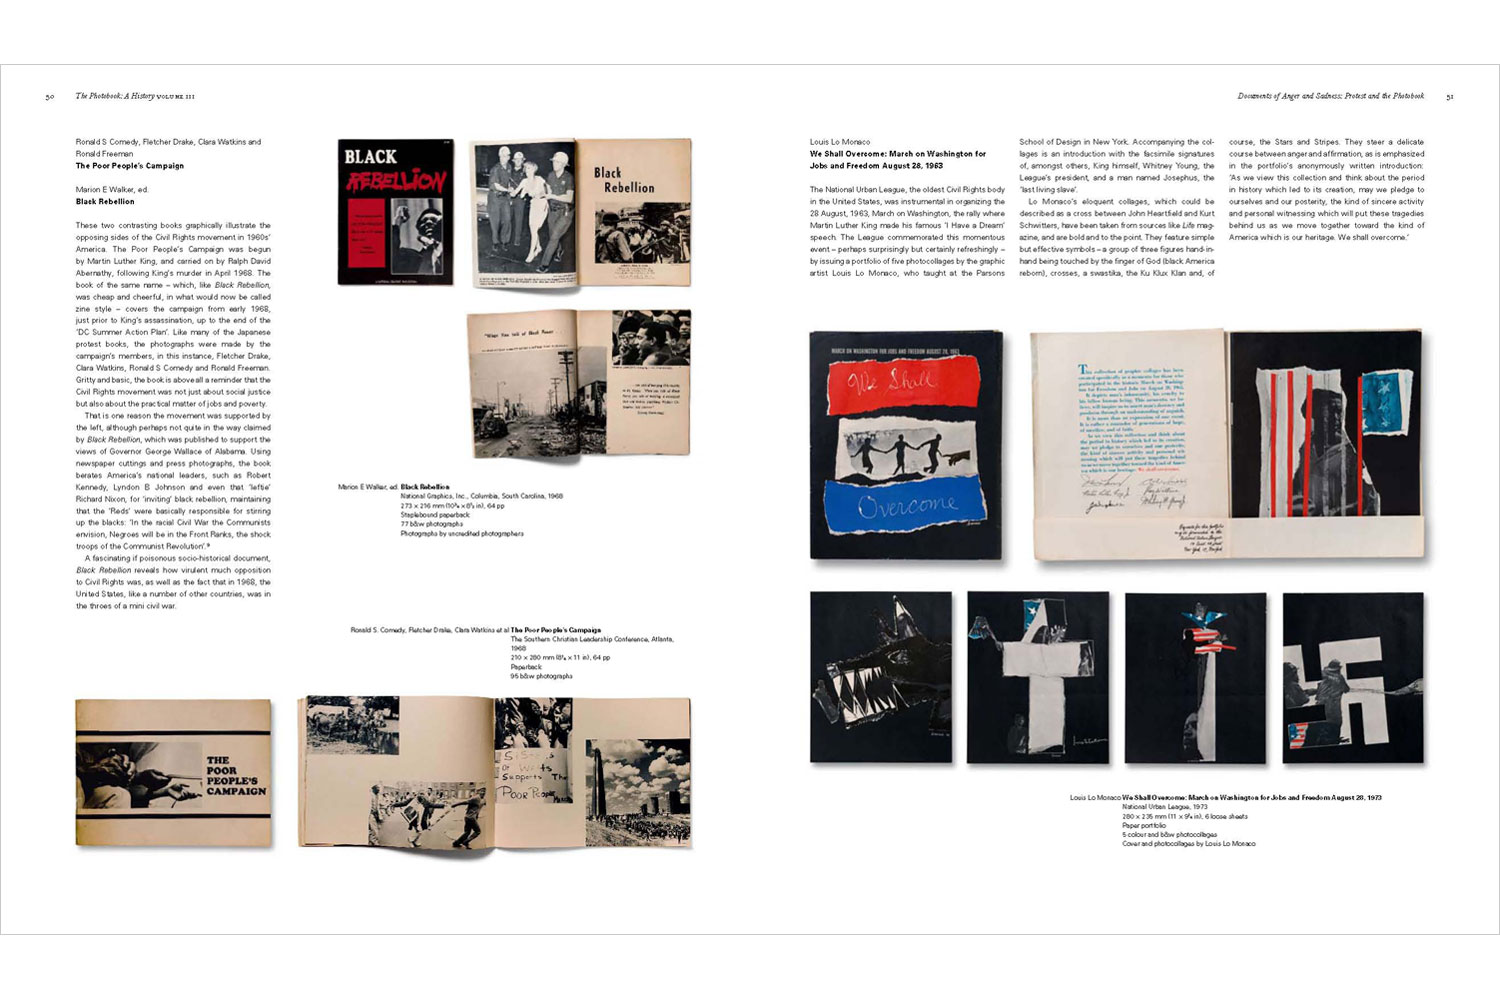 Phaidon's third and final volume in the Photobook: A History series, writter by Marti Parr and Gerry Badger